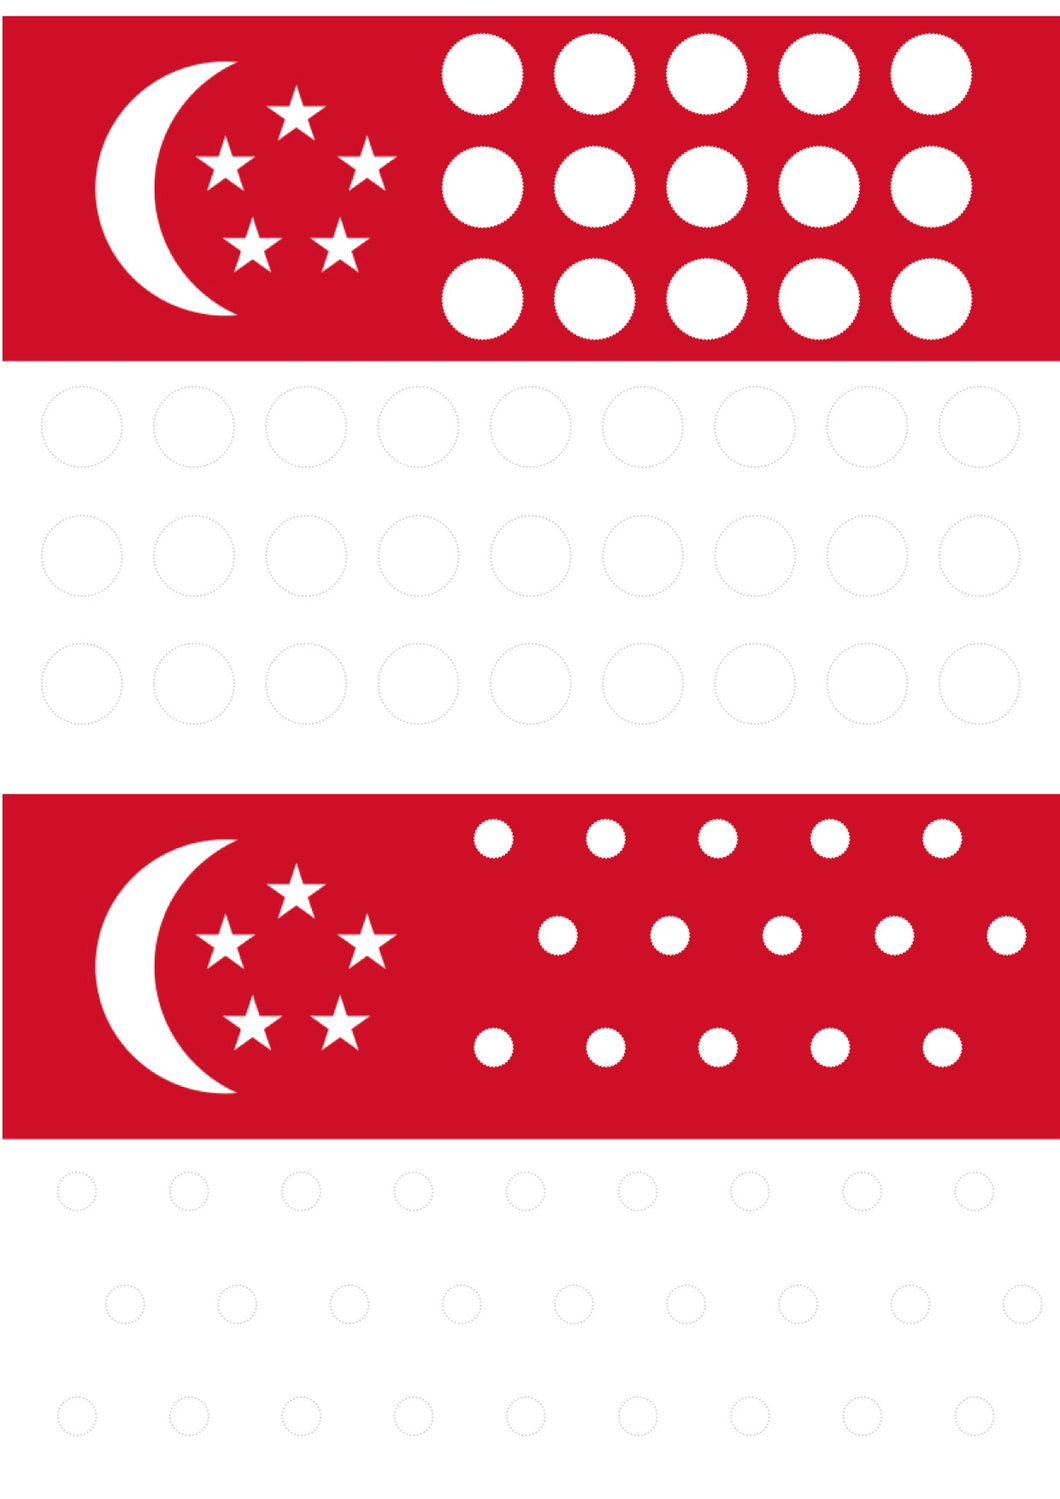 Singapore flag dot & colouring activity